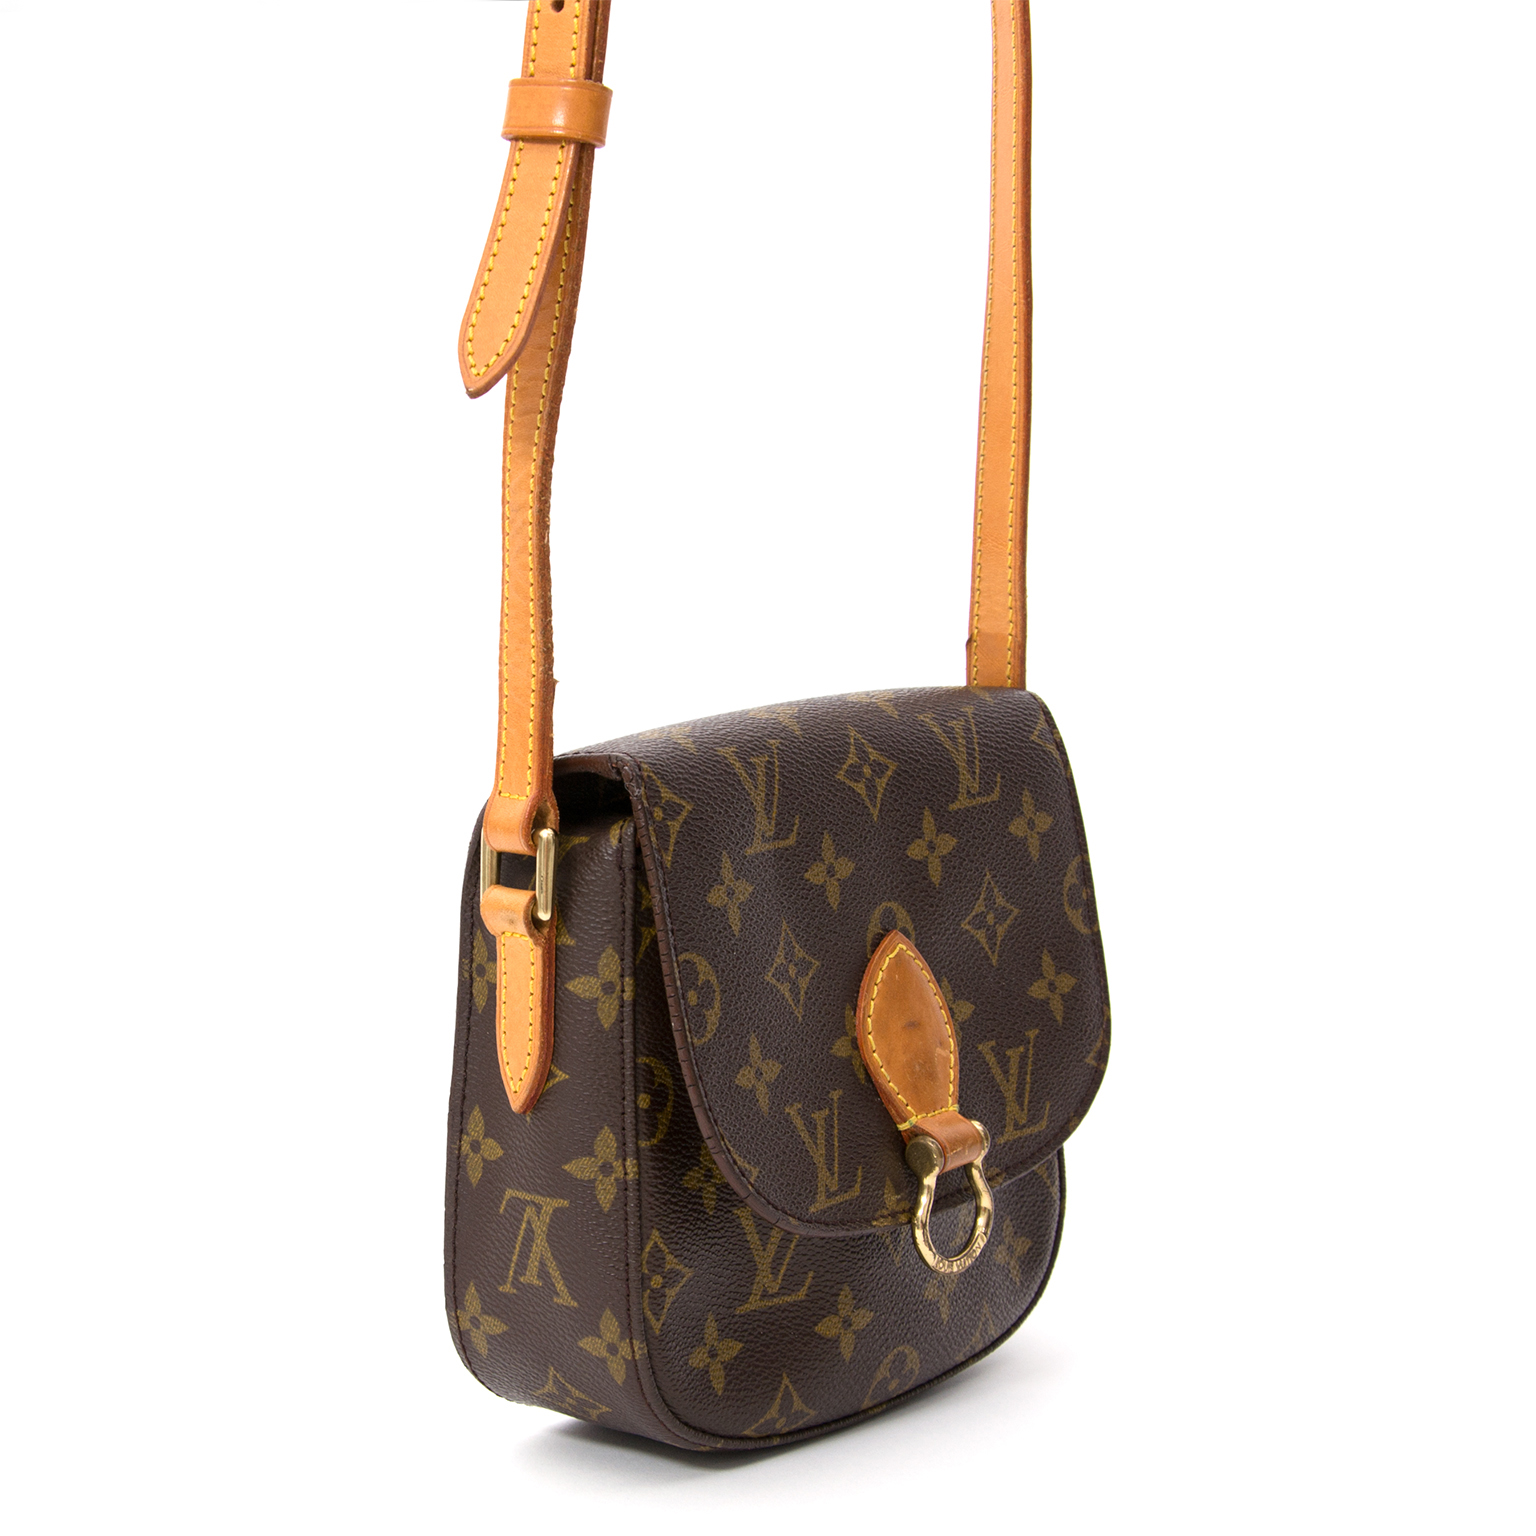 Vintage bags online. Shoes online for women